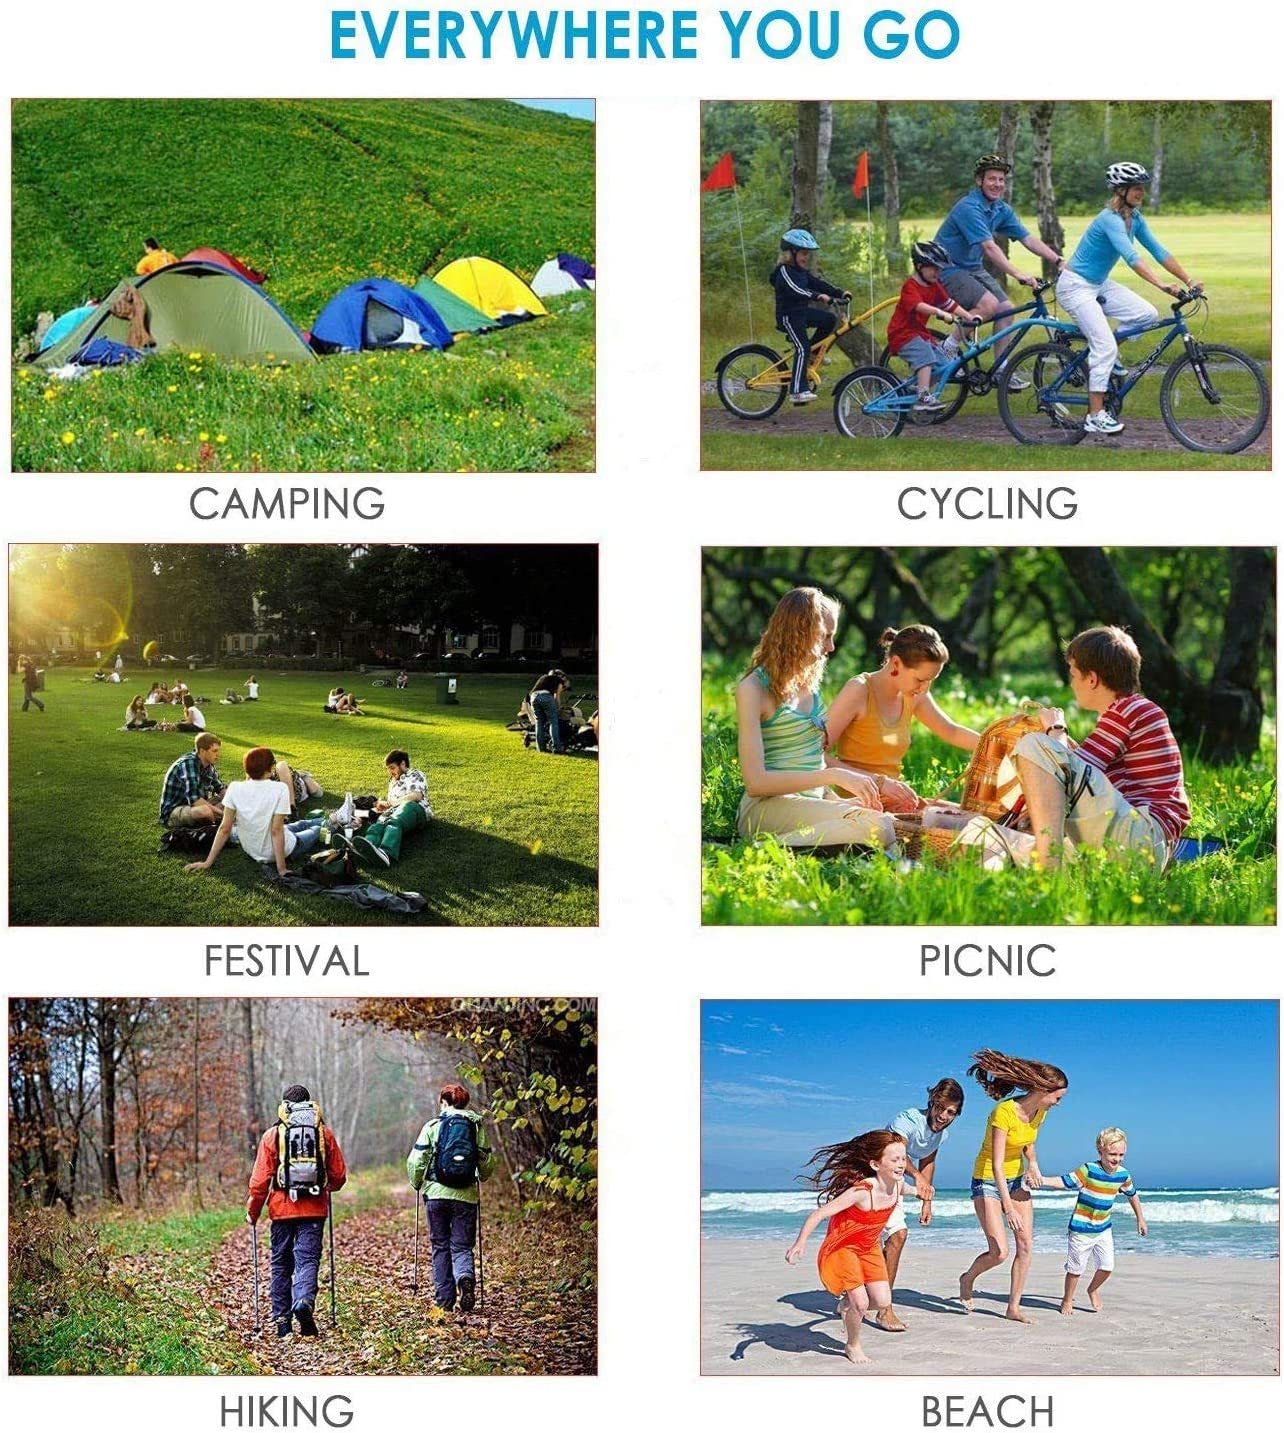 4 Fixed Piles+1 Metal Buckle Portable Sandfree Beach Blanket Waterproof Picnic Blanket Oversized 83X78for 5-7 Adults Beach Mat Outdoor for Travel,Camping,Hiking and Music Festivals